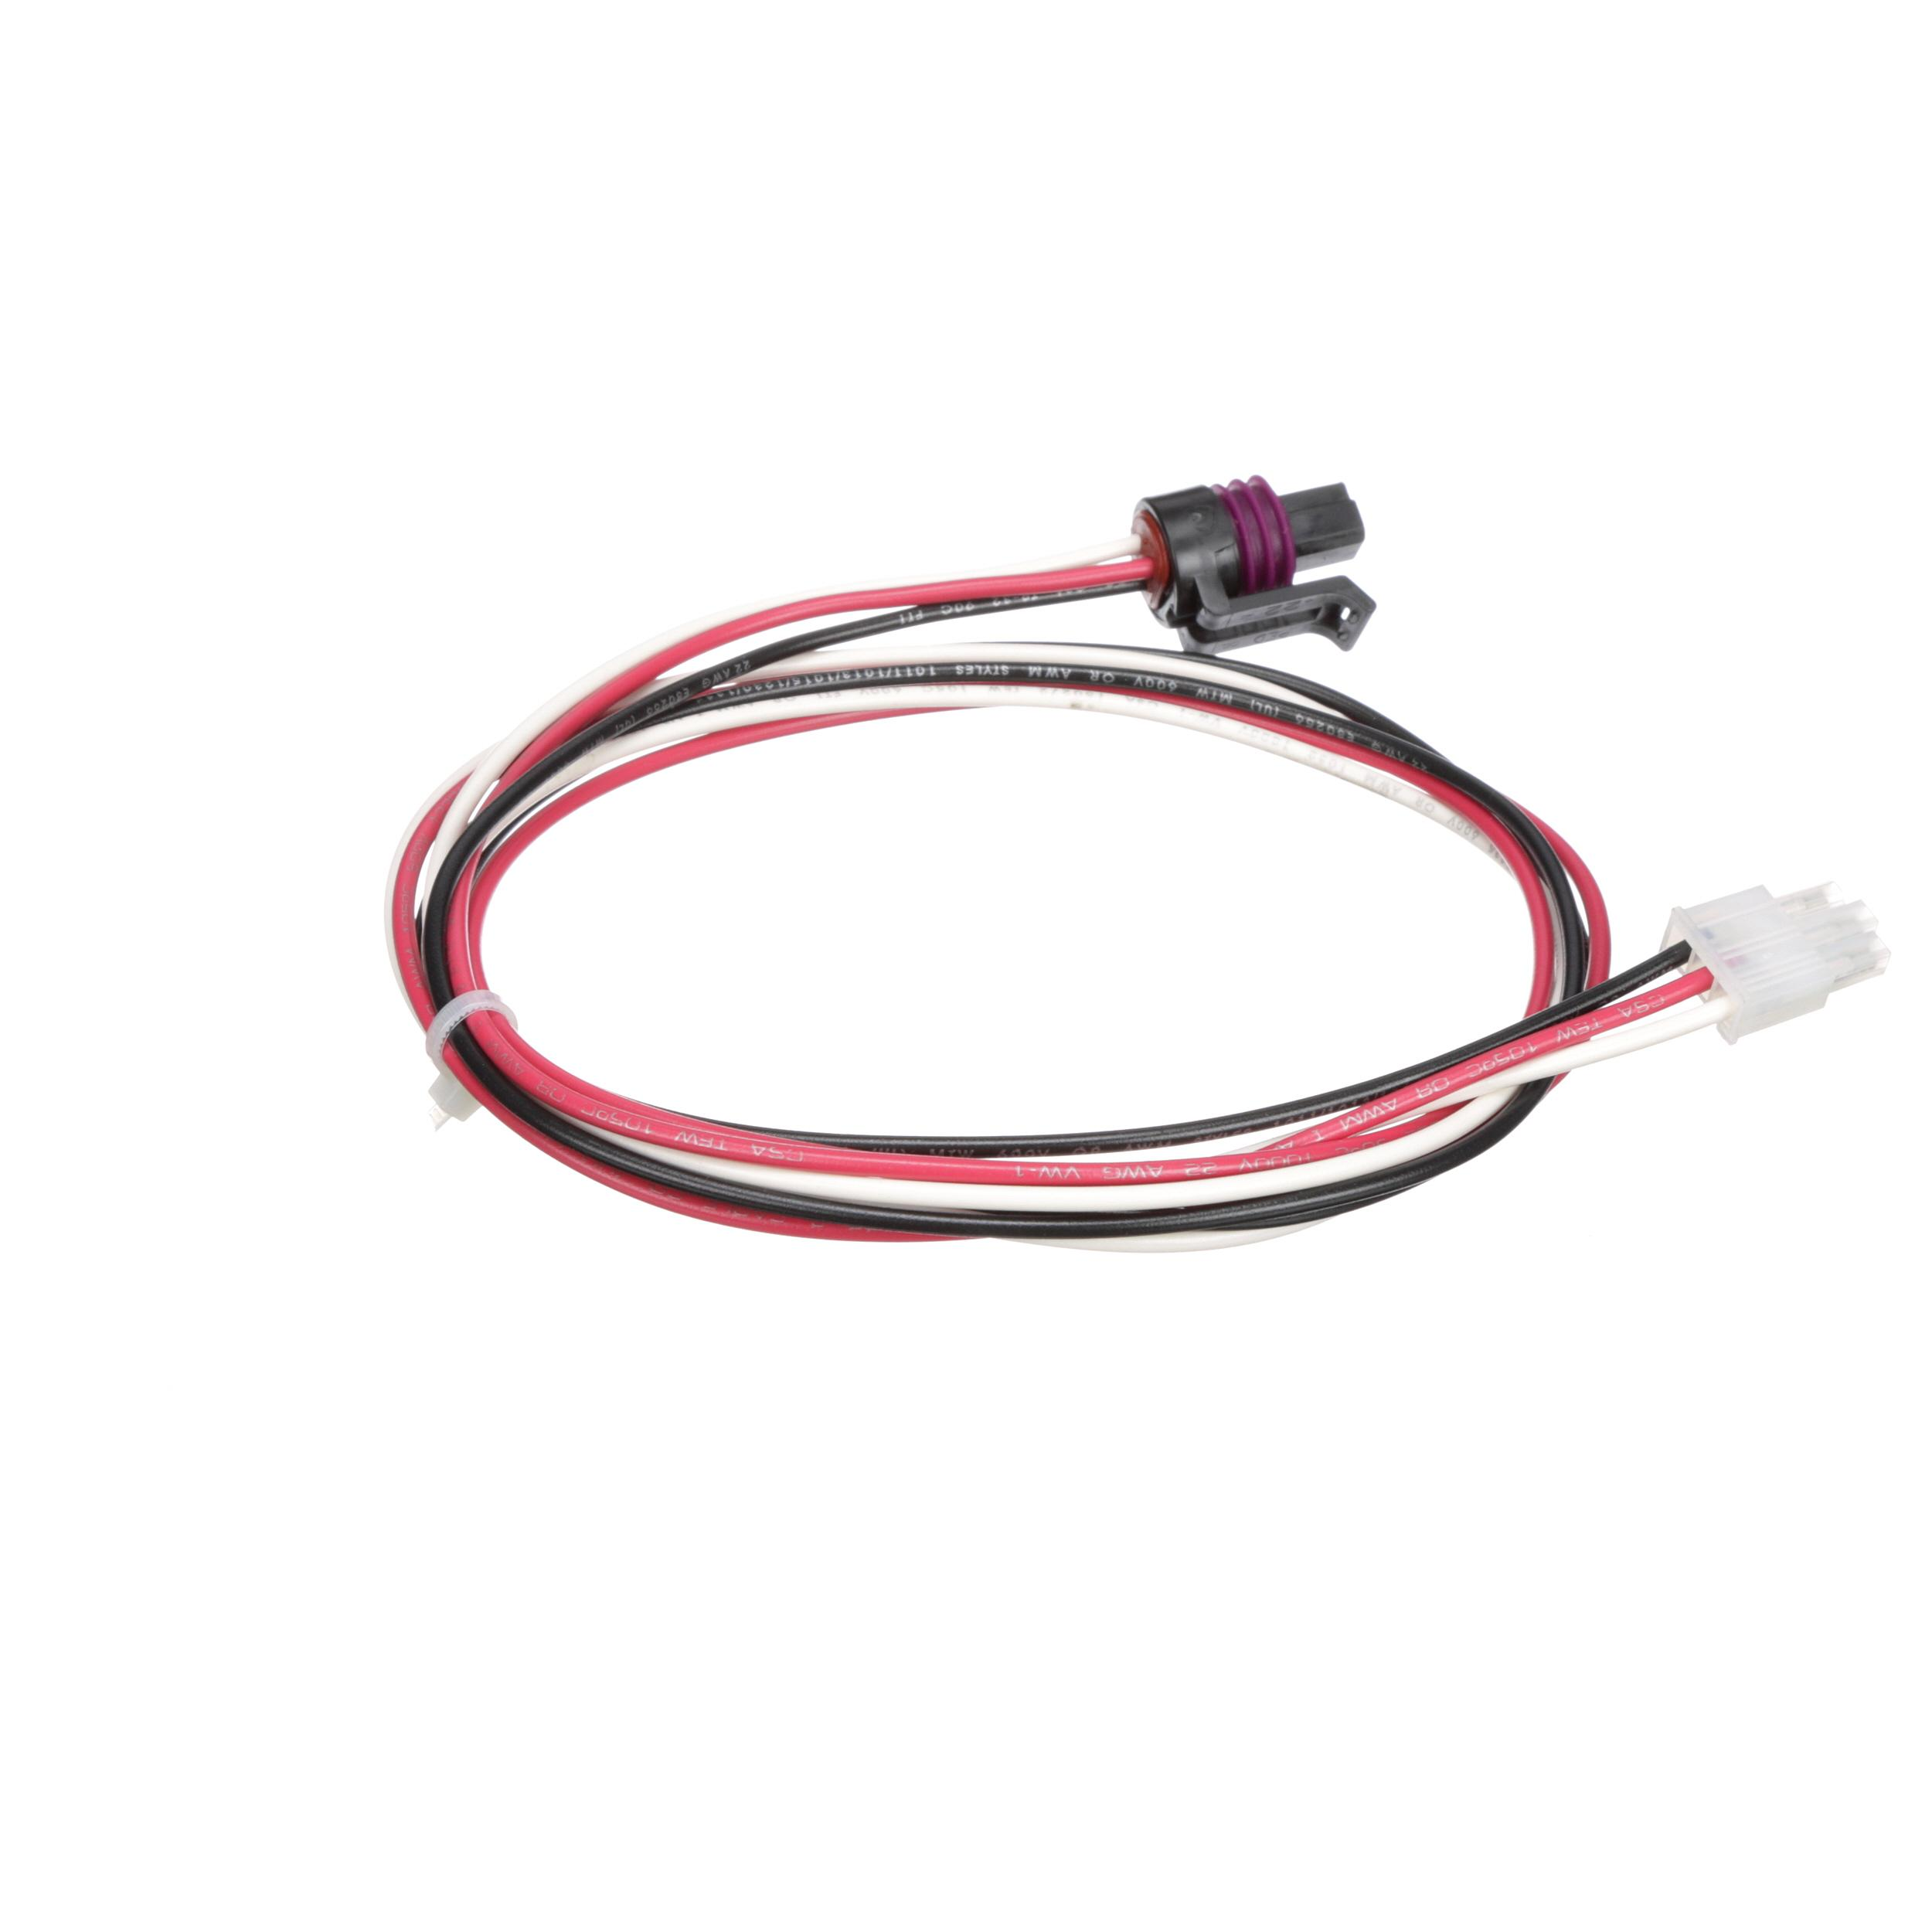 506892_R01_C16?w\=300\&h\=300\&img404\=ImageComing\&v\=0\&locale\=en USen ** aero tel wire harness corp gy6 wiring harness \u2022 free wiring aero tel wire harness corp at eliteediting.co